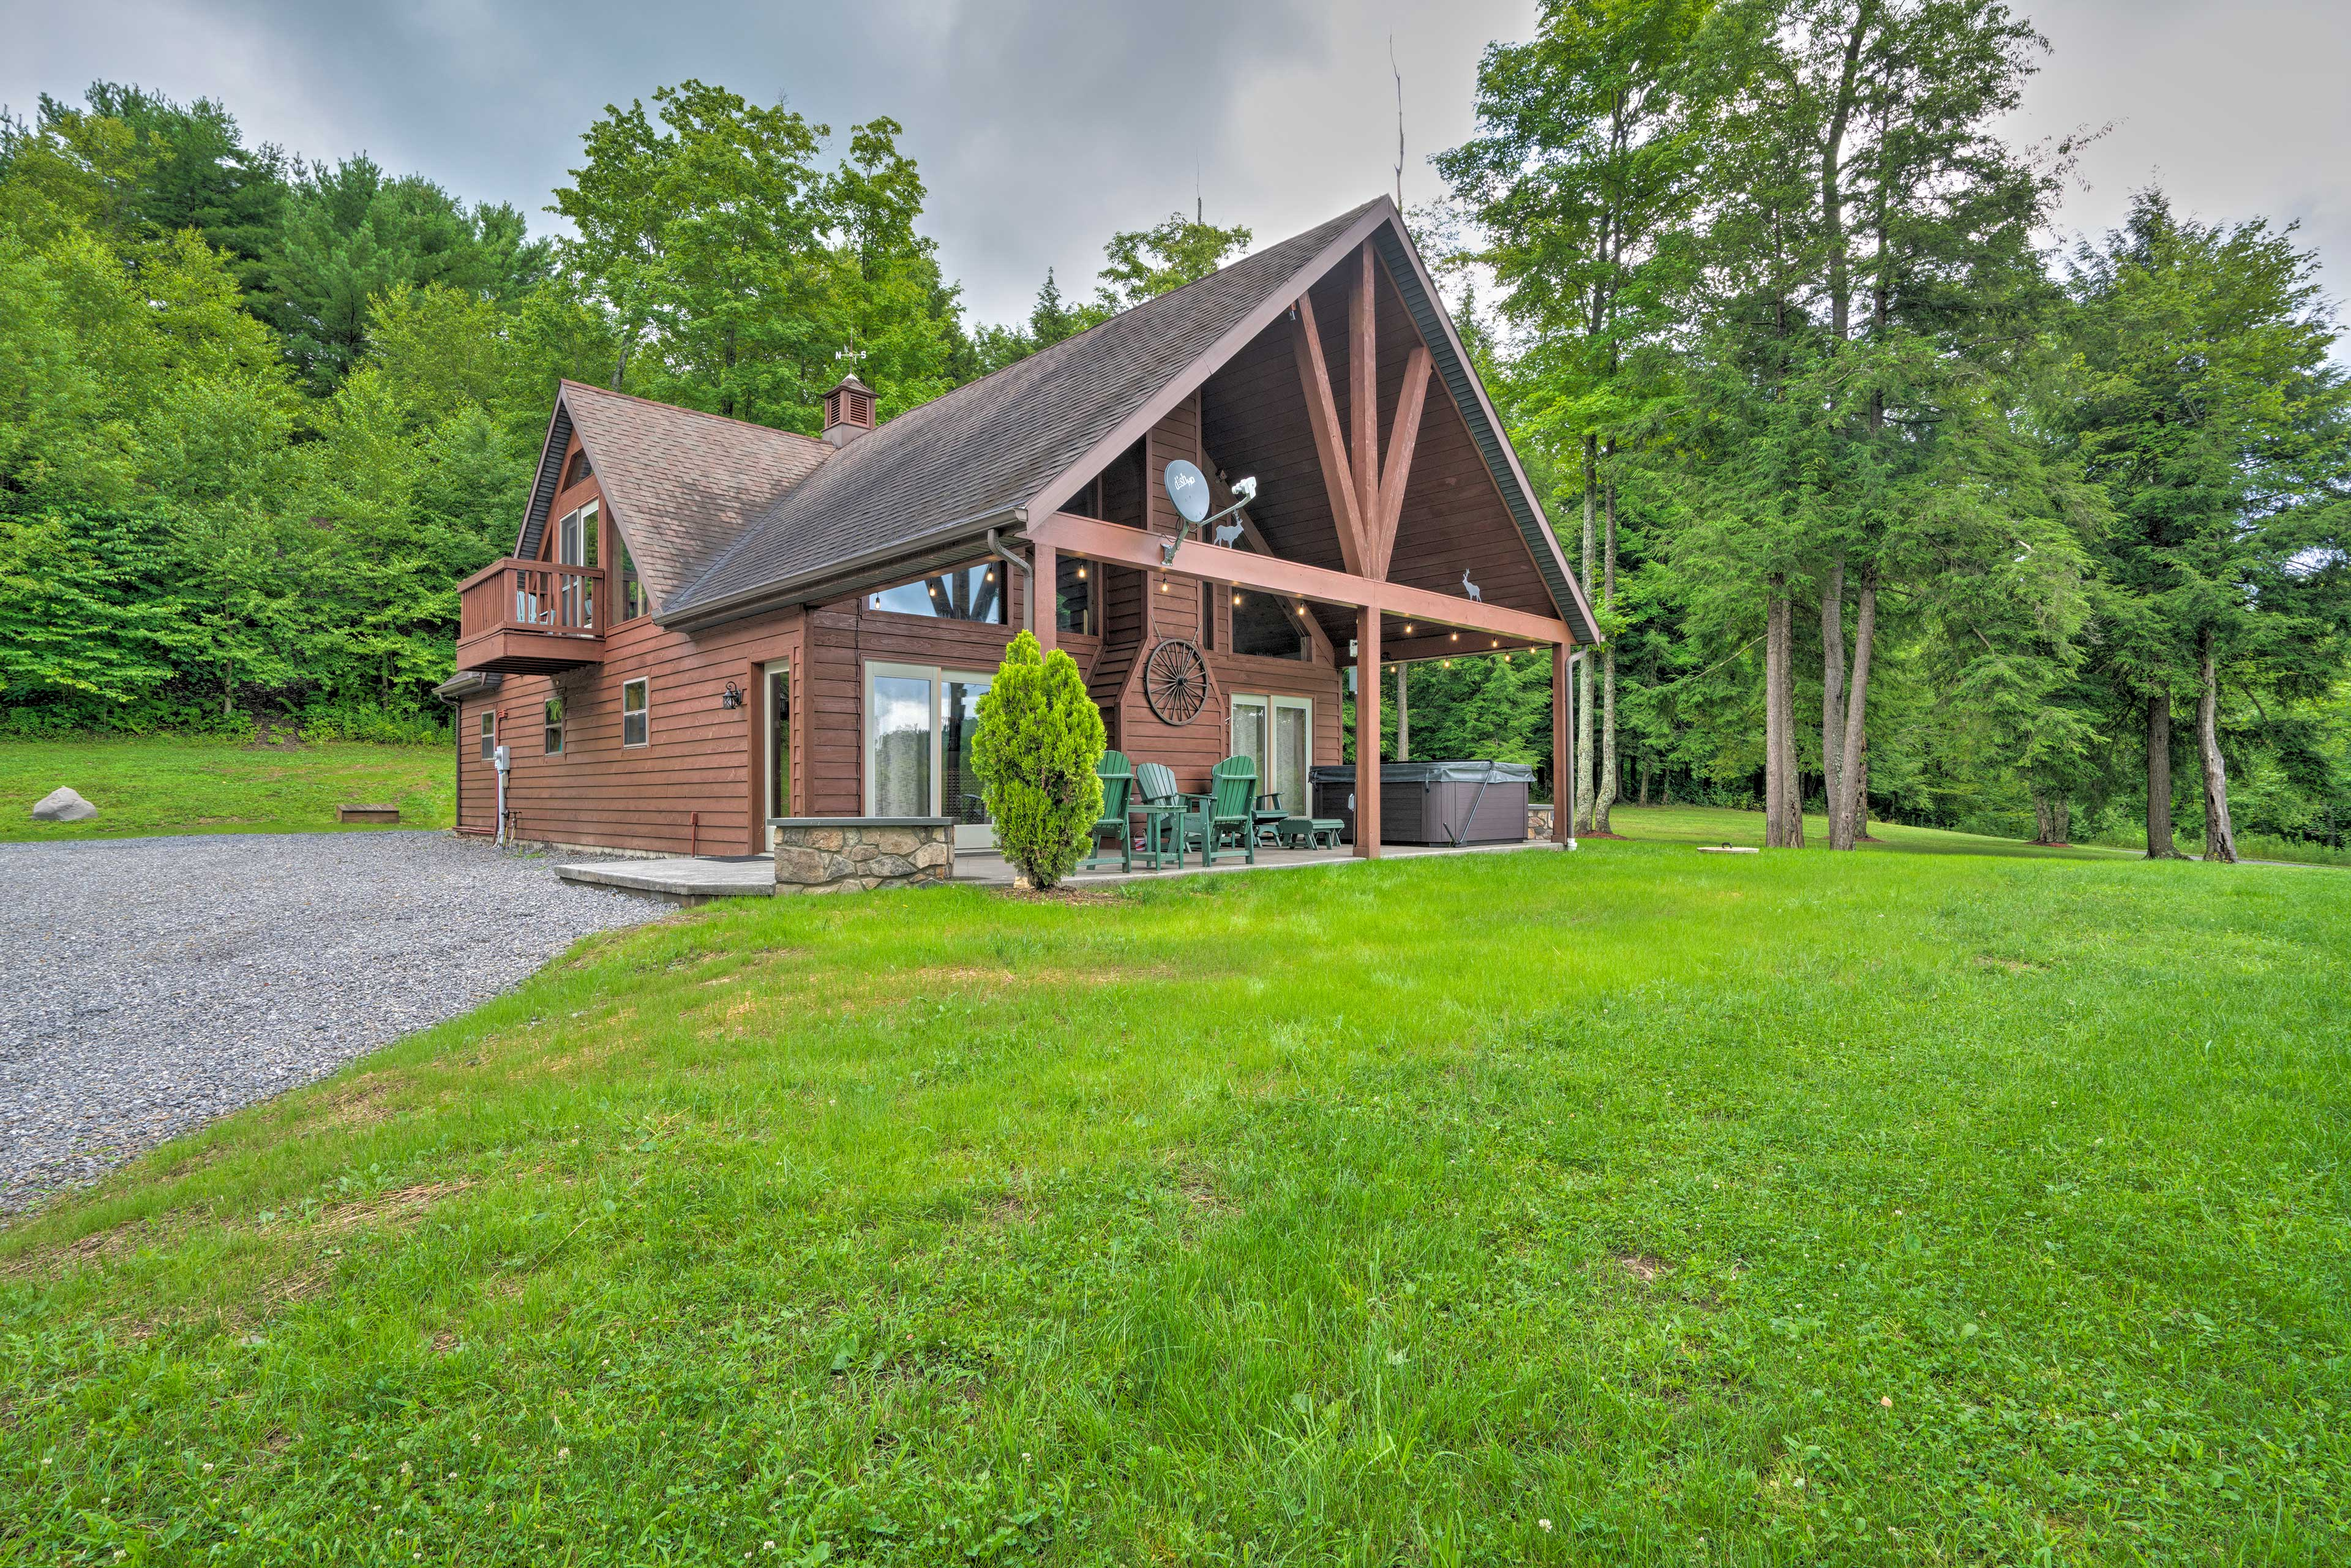 'Elk Terrace Lodge' has a hot tub and sits on over 3 acres of private land.